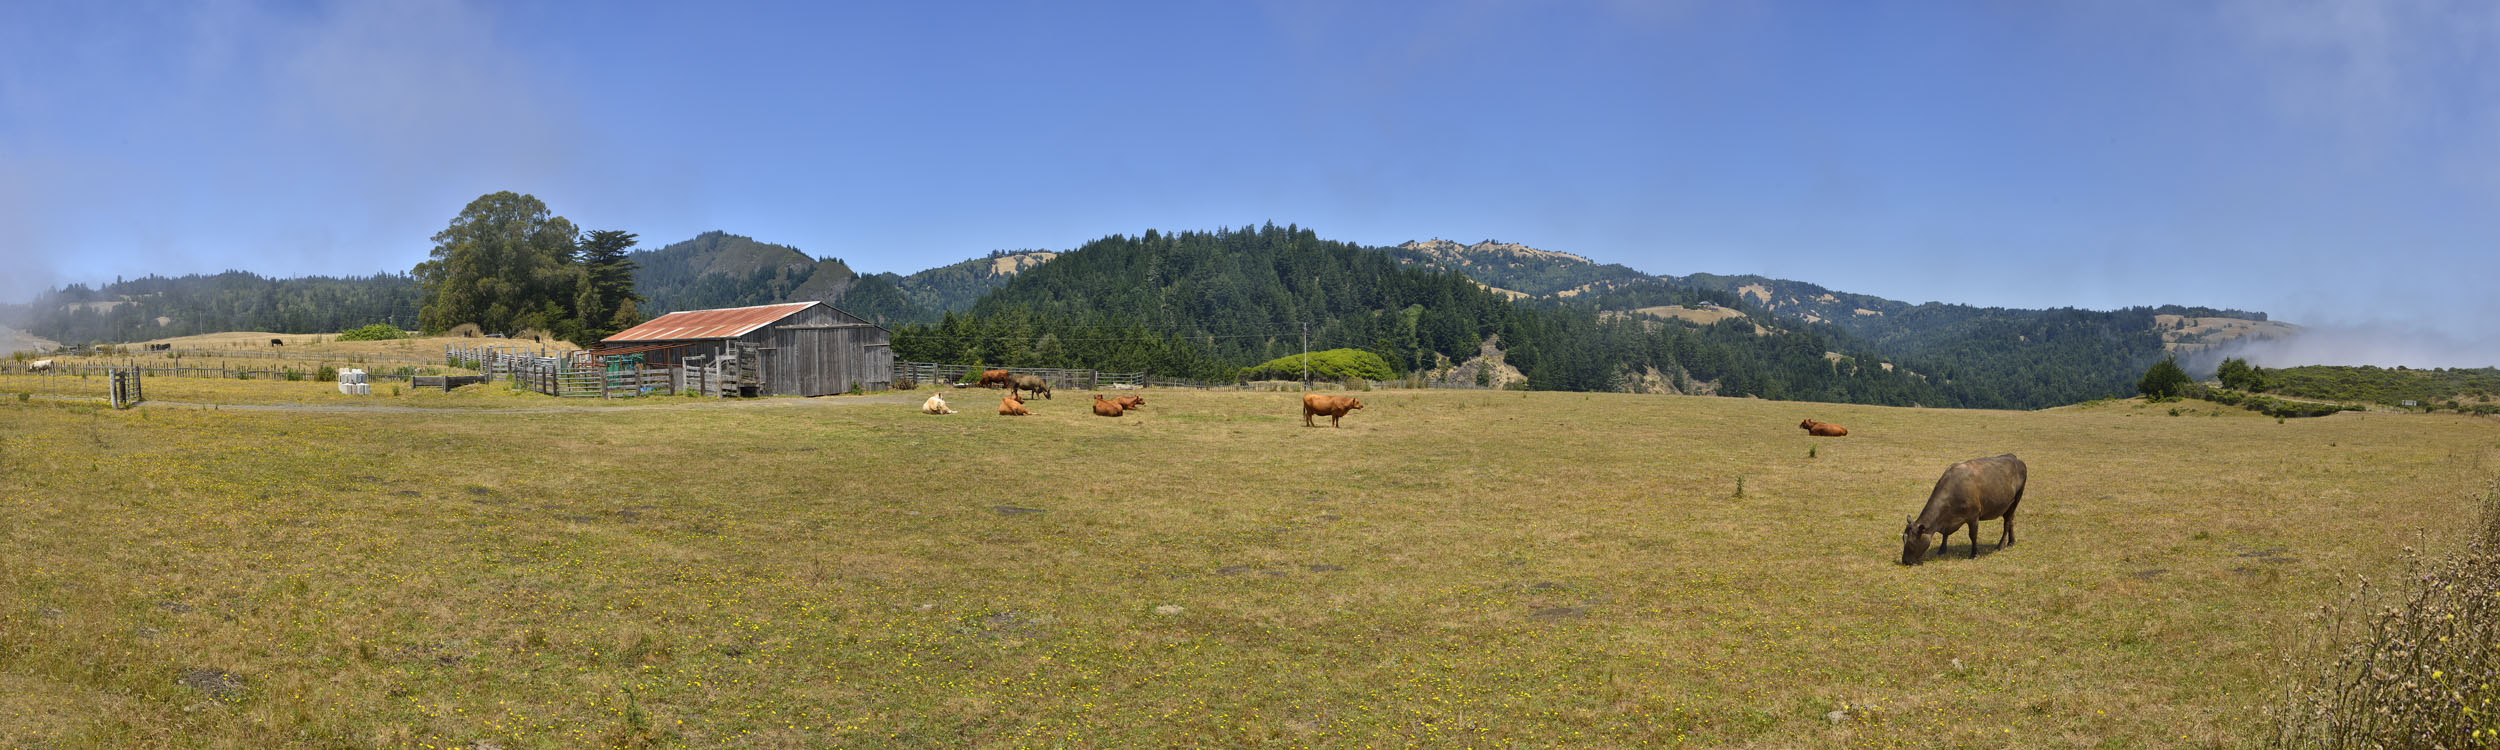 Cattle at Meyers Grade Ranch, CA